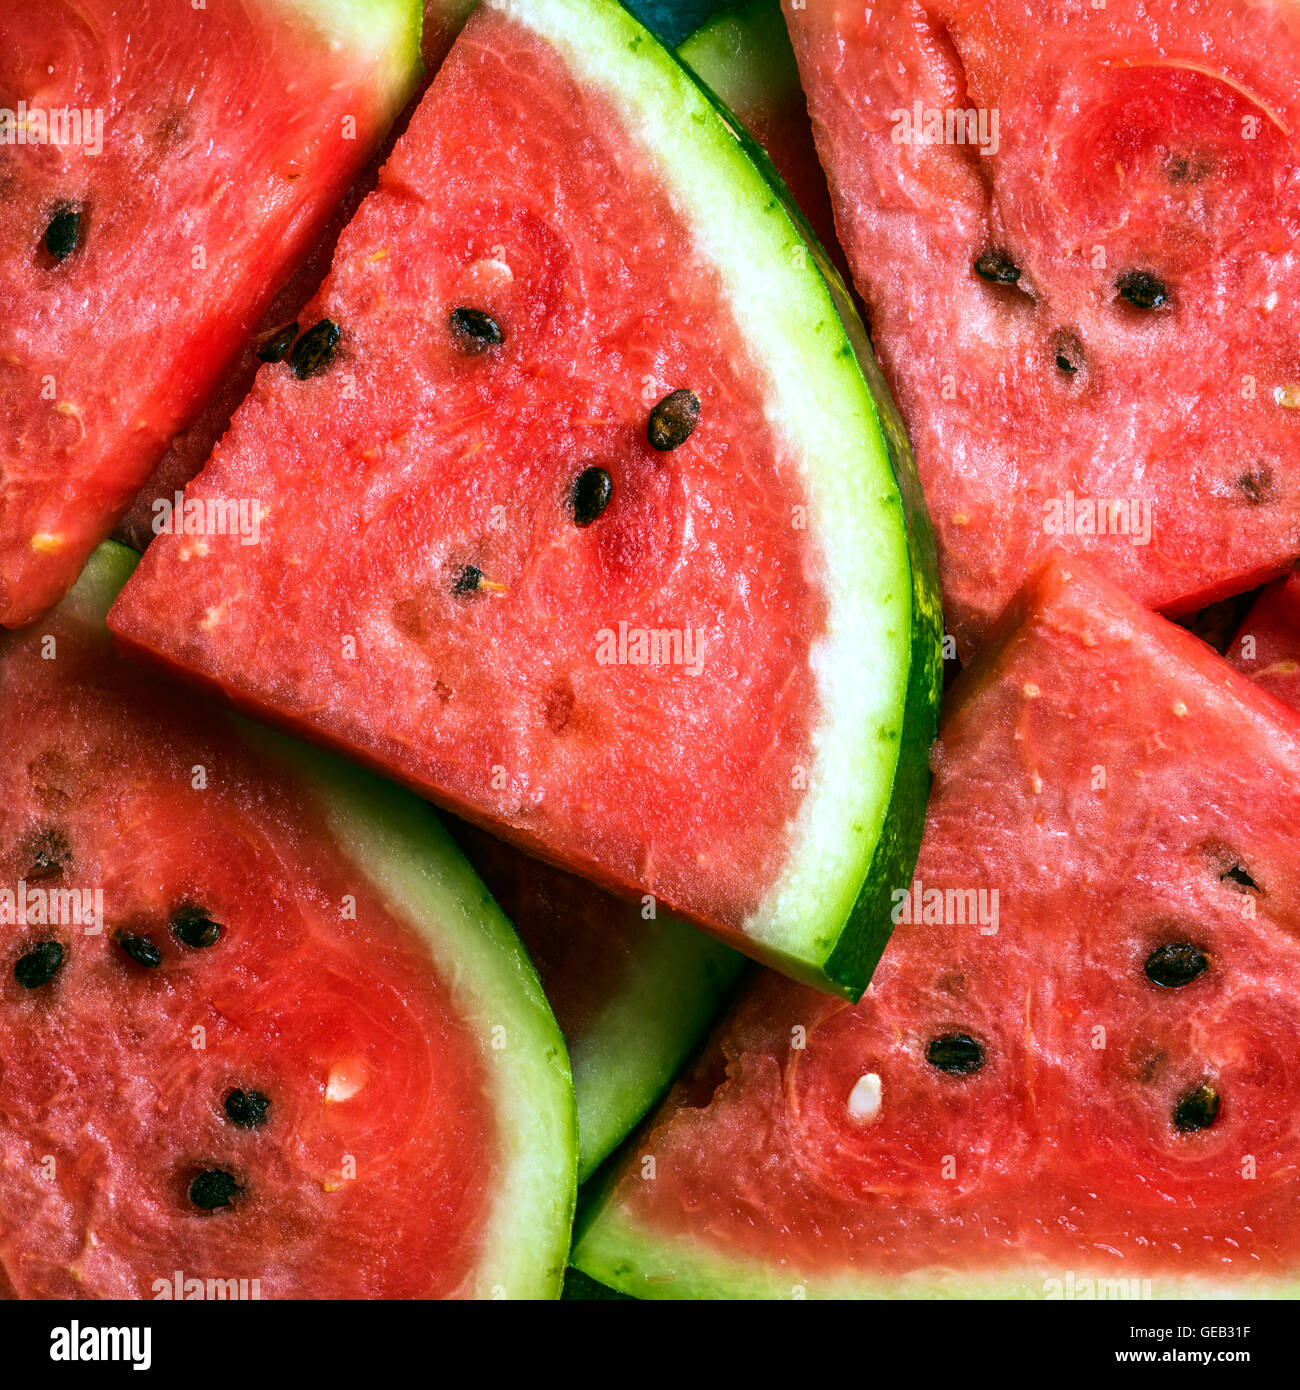 Sliced watermelon. - Stock Image